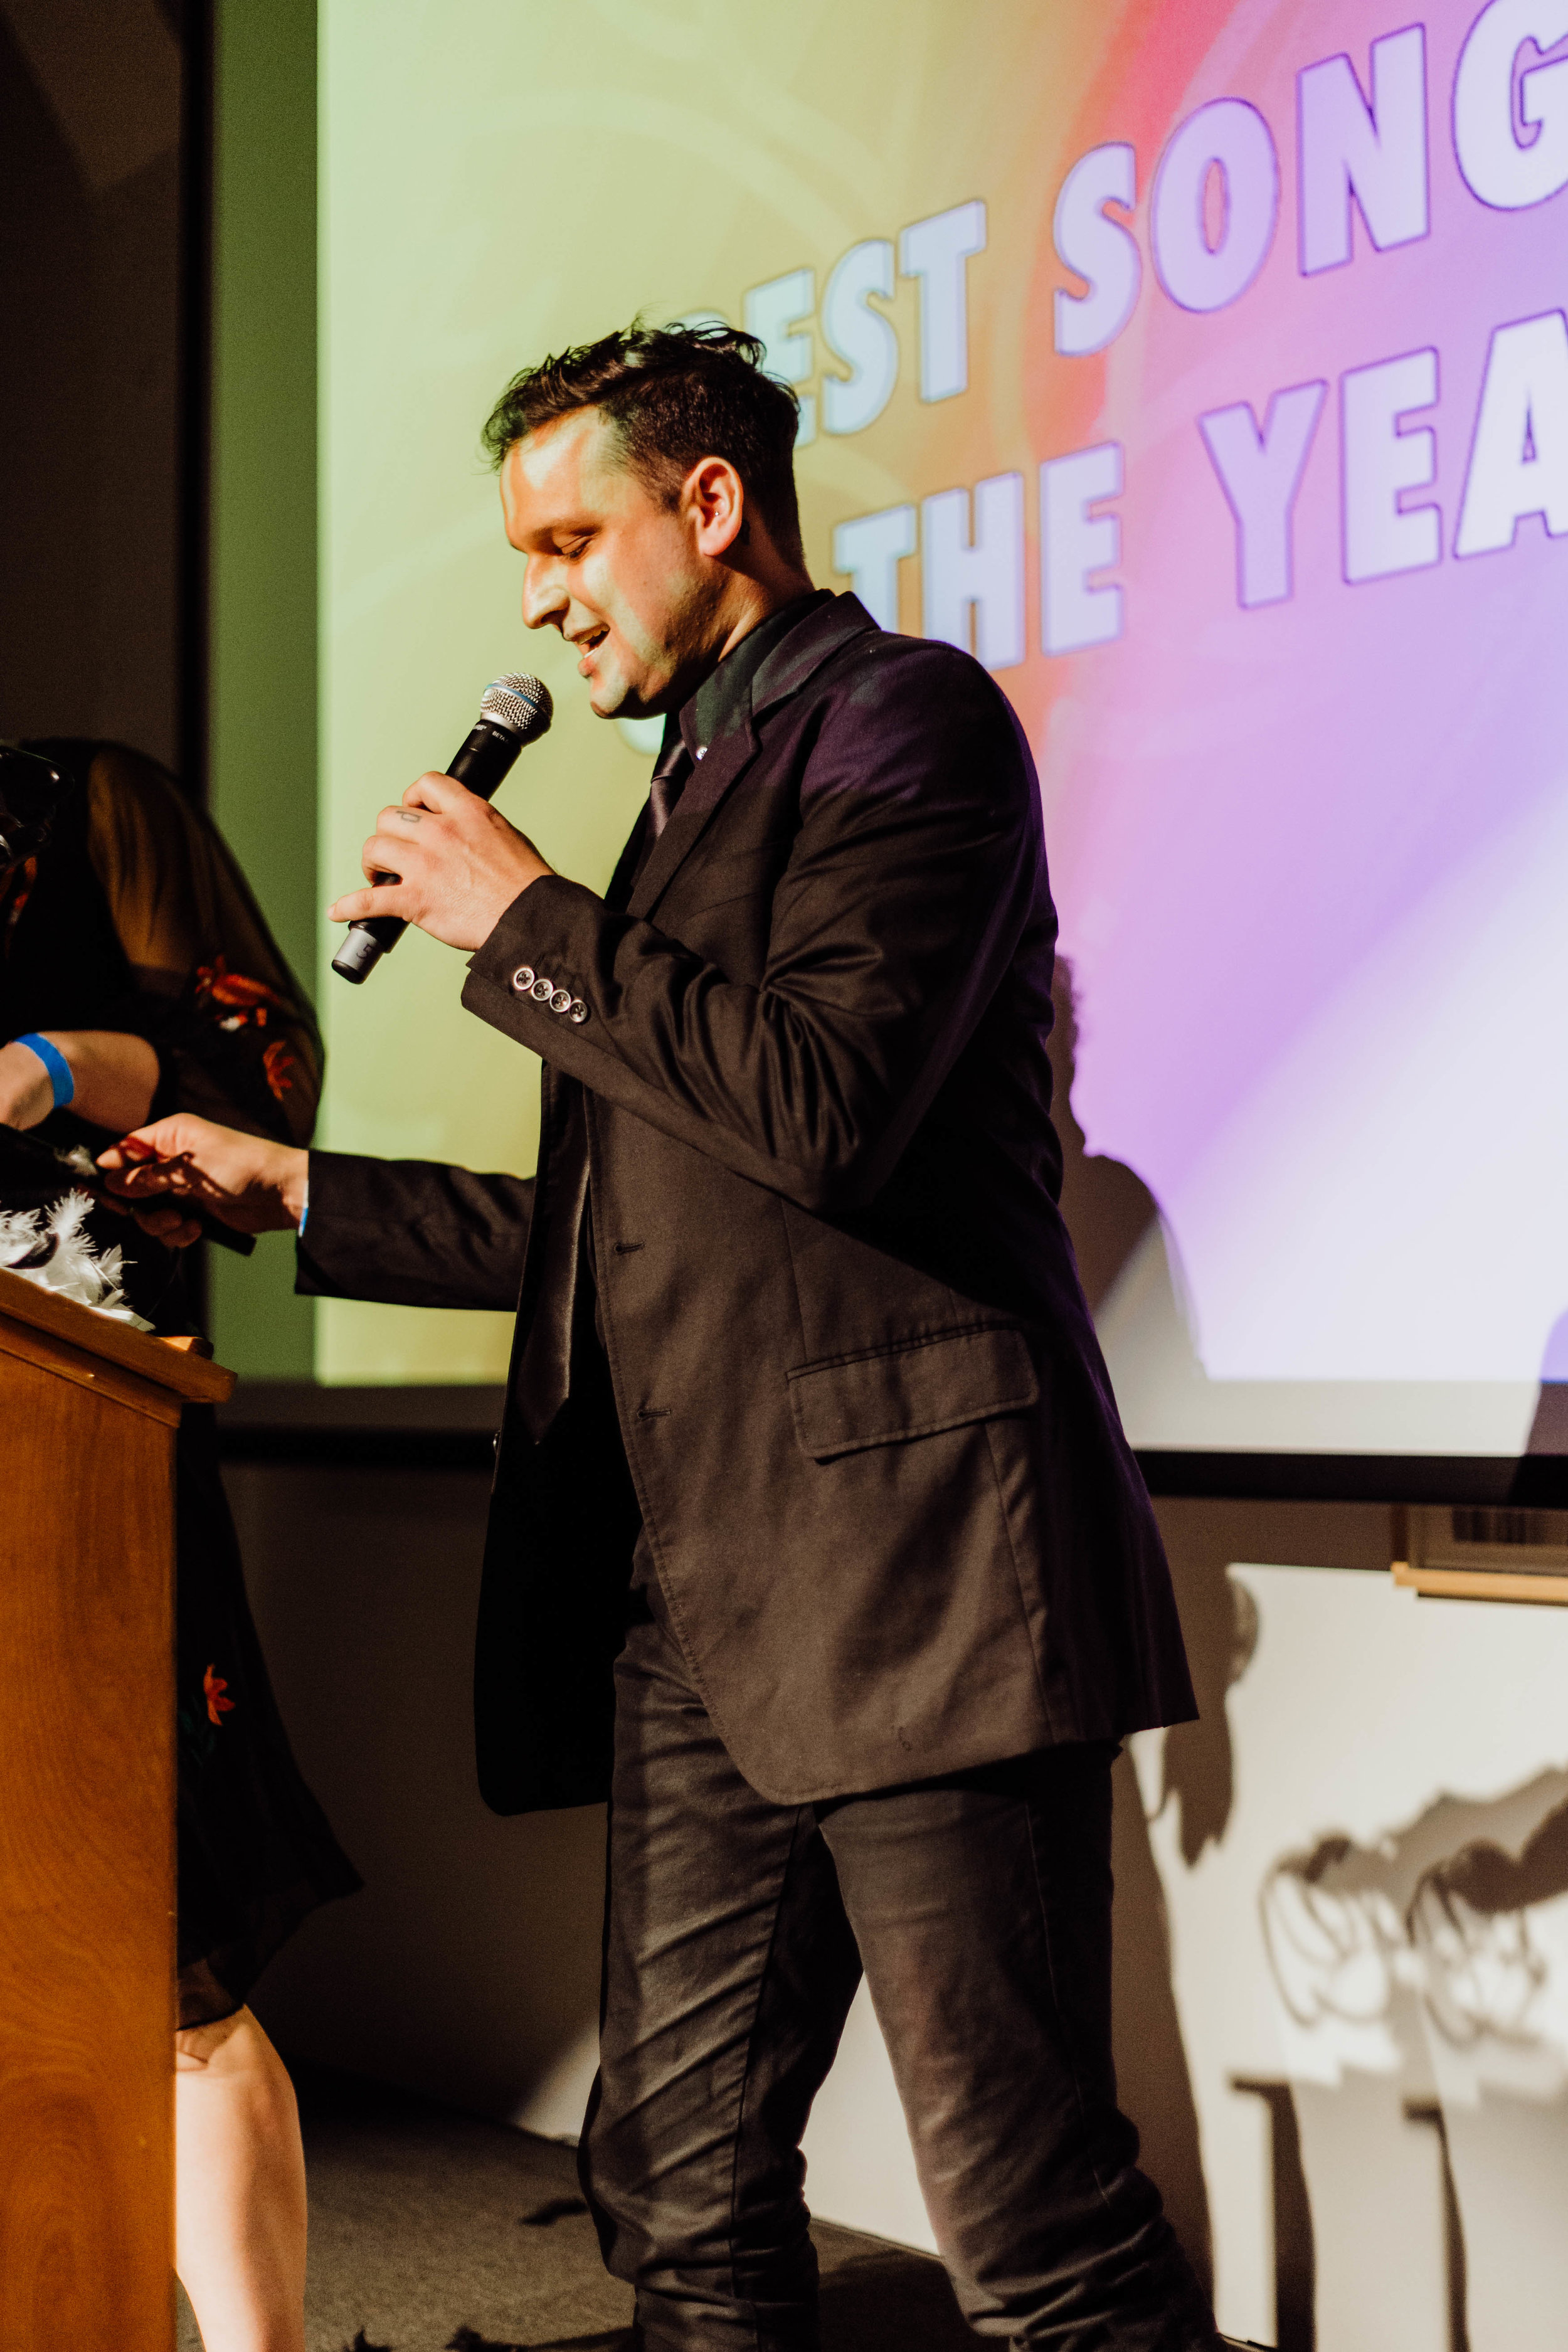 George Ferrie presenting the award for Best Song of the Year.